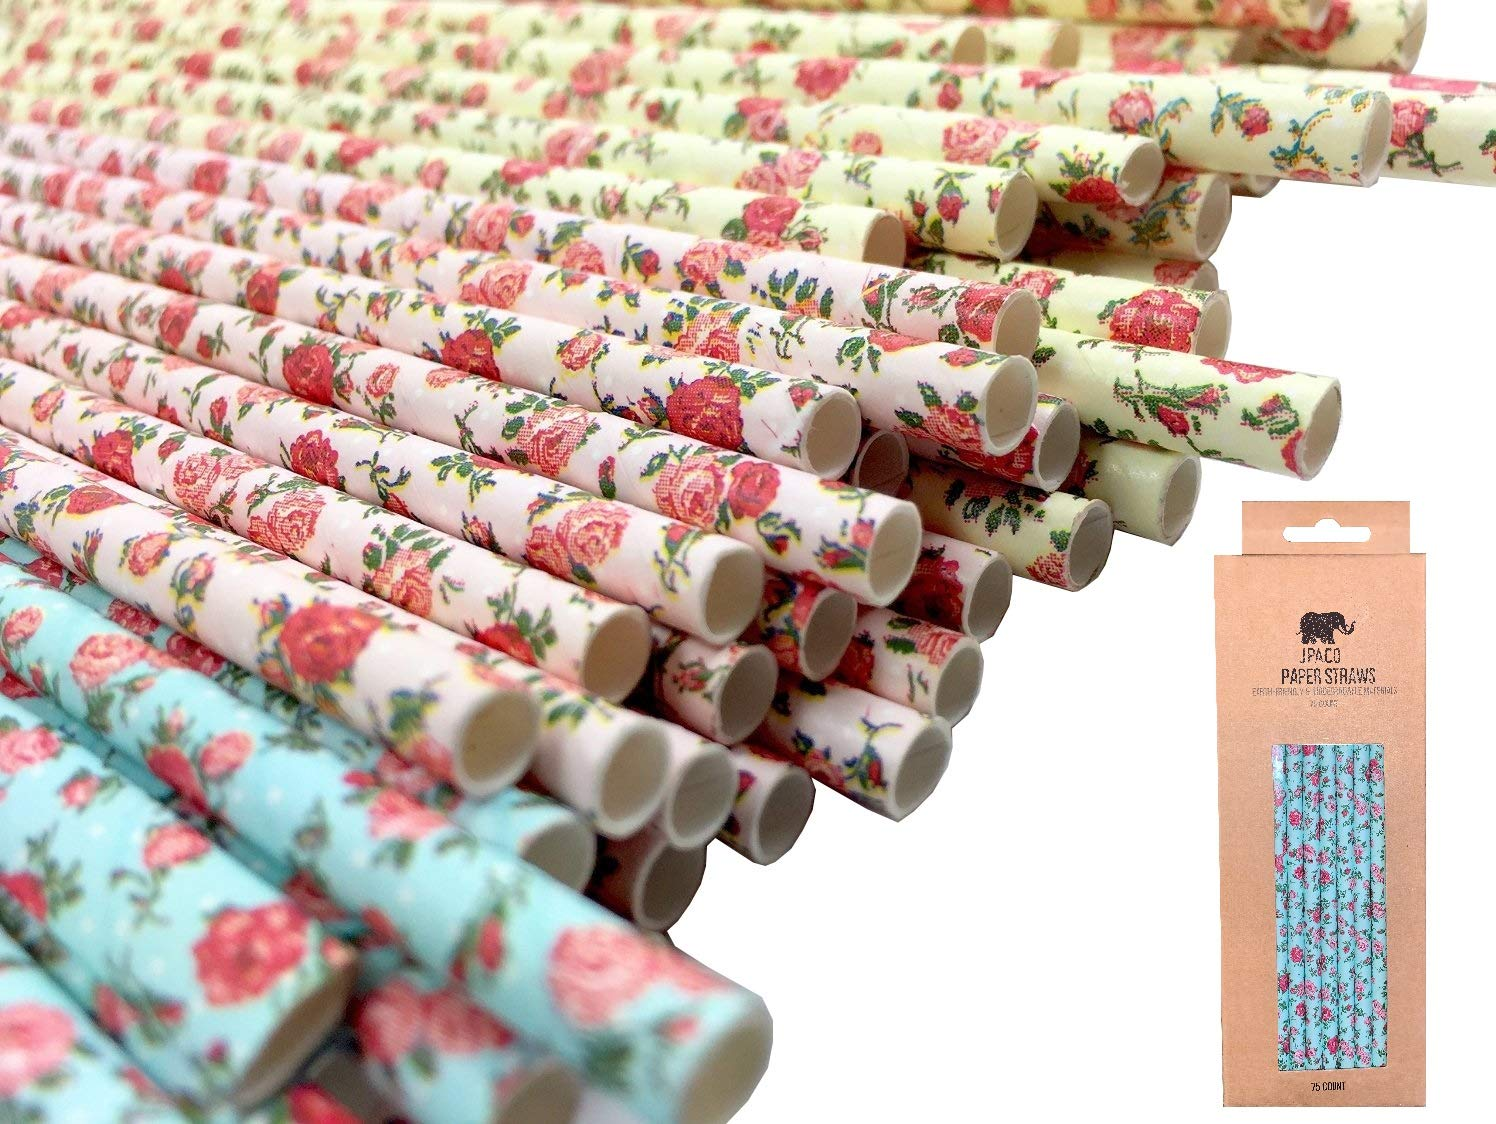 JPACO Jumbo Floral Paper Straws for Boba (75 Pack, Pink, Blue, Yellow) Vintage Flower & Rose Designs, Biodegradable Eco Friendly Disposable Party Straws for Party & Events